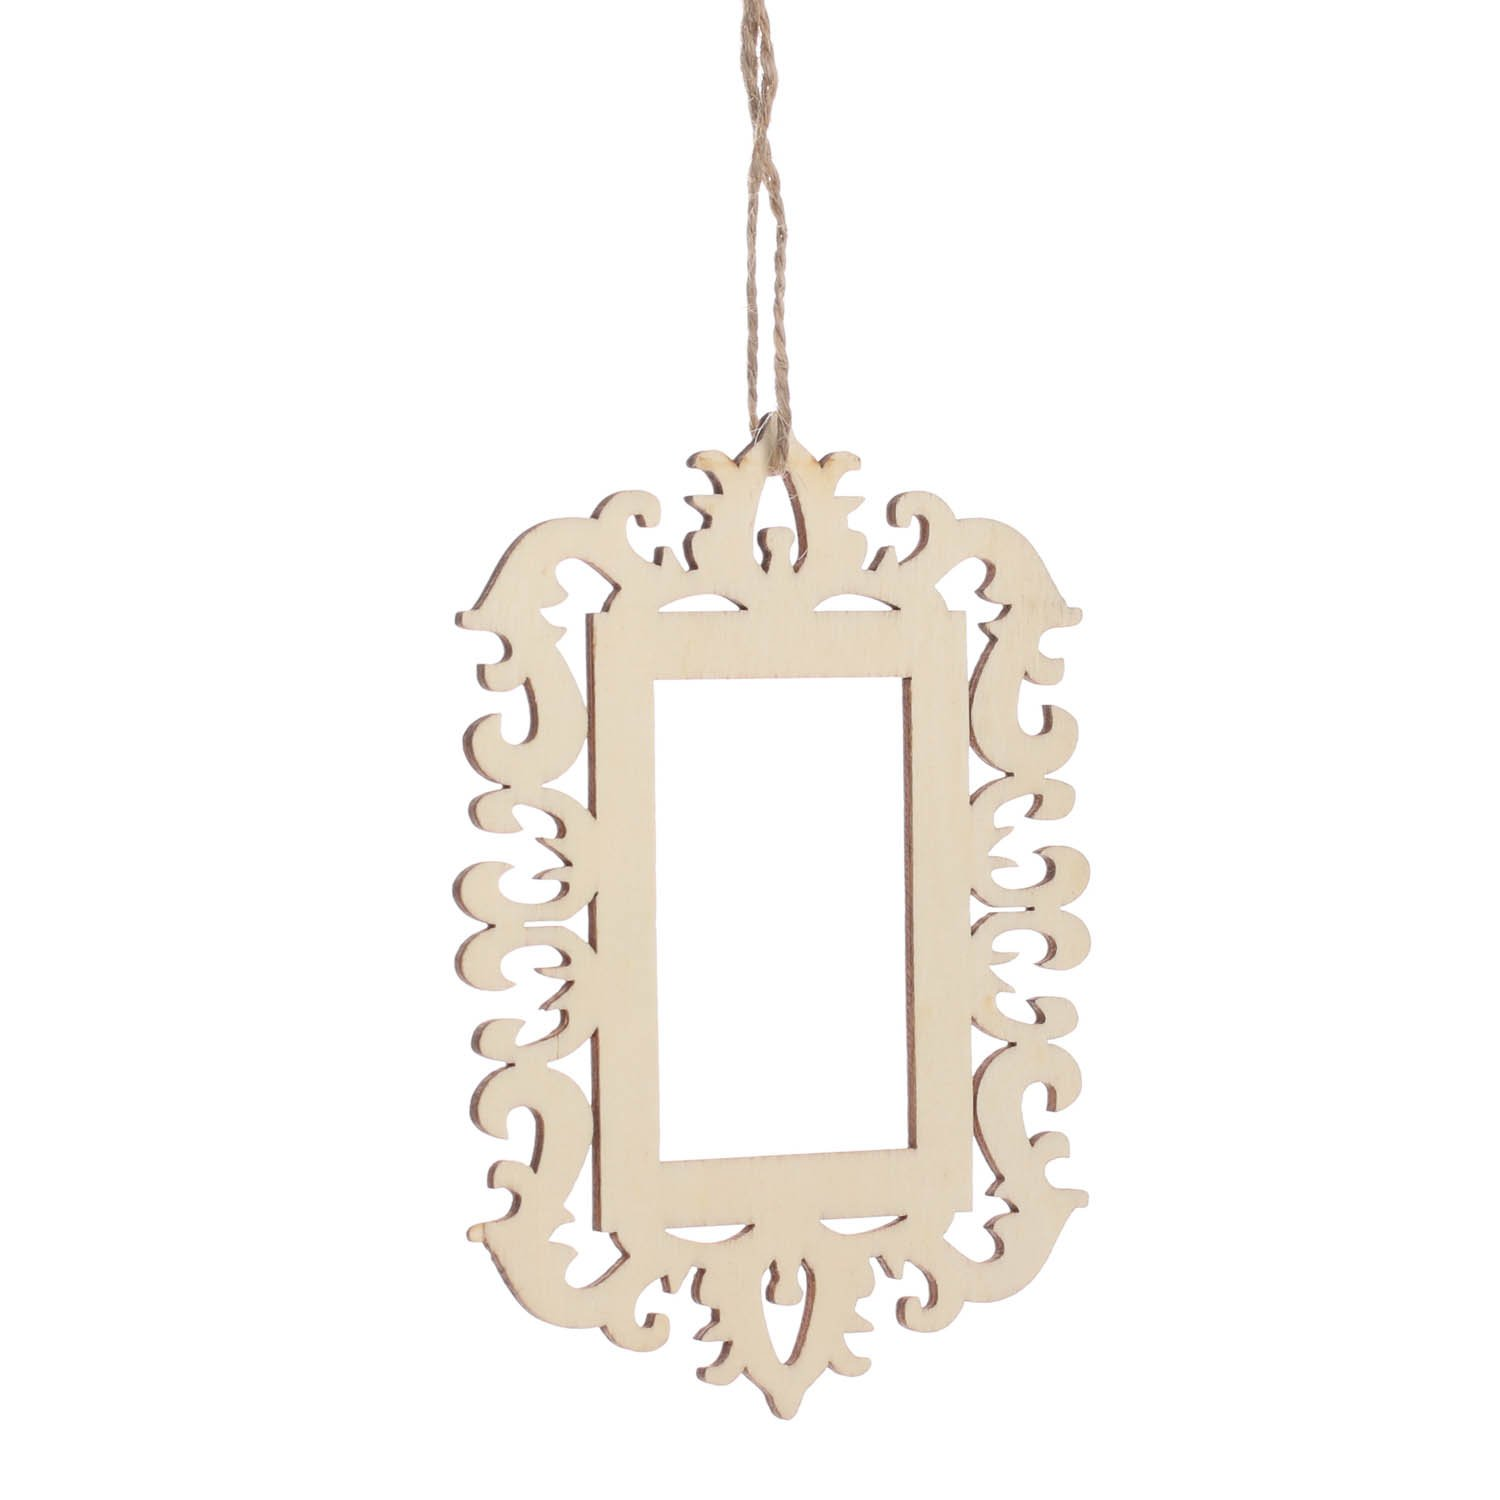 Factory Direct Craft Unfinished Wood Laser Cut Photo Frame Ornaments with Jute Hanger - 12 Ornaments …